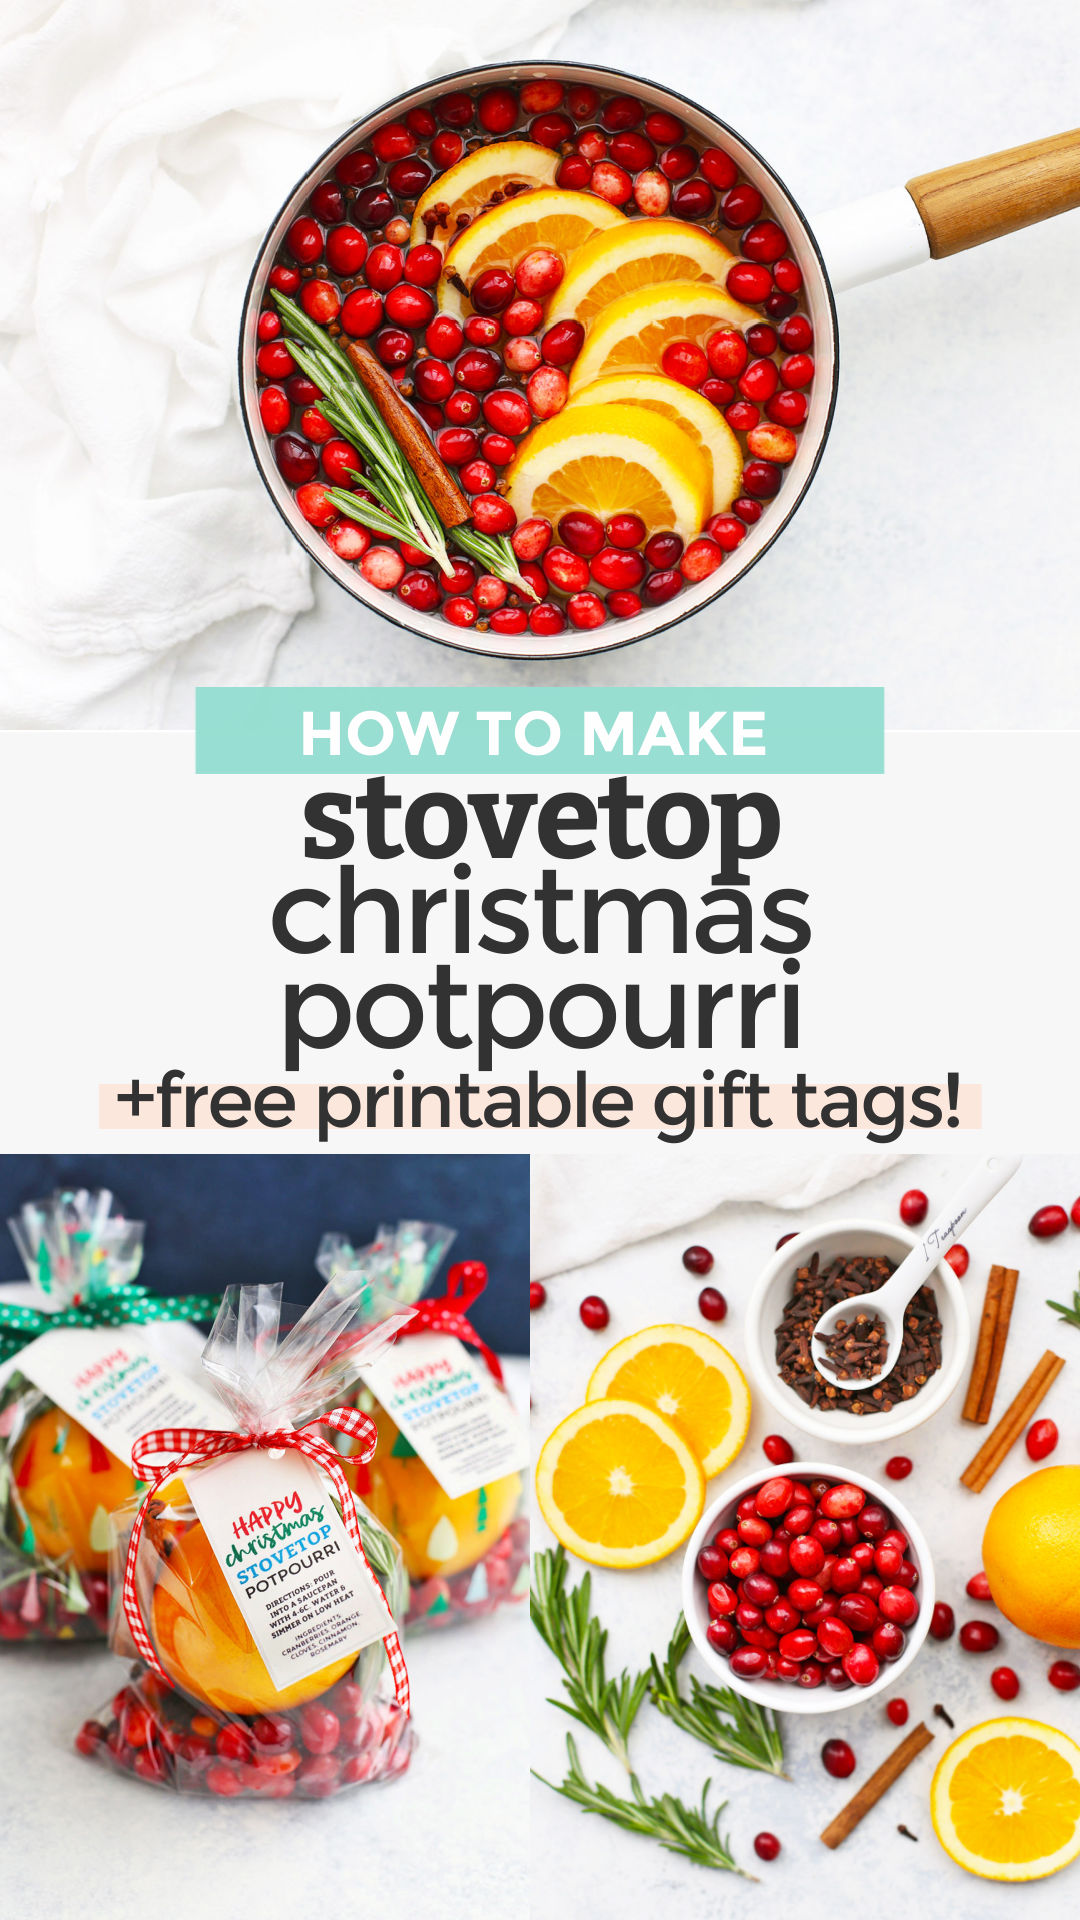 How to Make Stovetop Christmas Potpourri - This holiday potpourri recipe is like bottling up the Christmas smell! It's a great way to make your home smell like the holidays and makes a fantastic gift. Click for a how-to video and FREE PRINTABLE gift tags for gifting!#freeprintable #gifttags #printablegifttags // gift tags // free printable gift tags // free Christmas printable